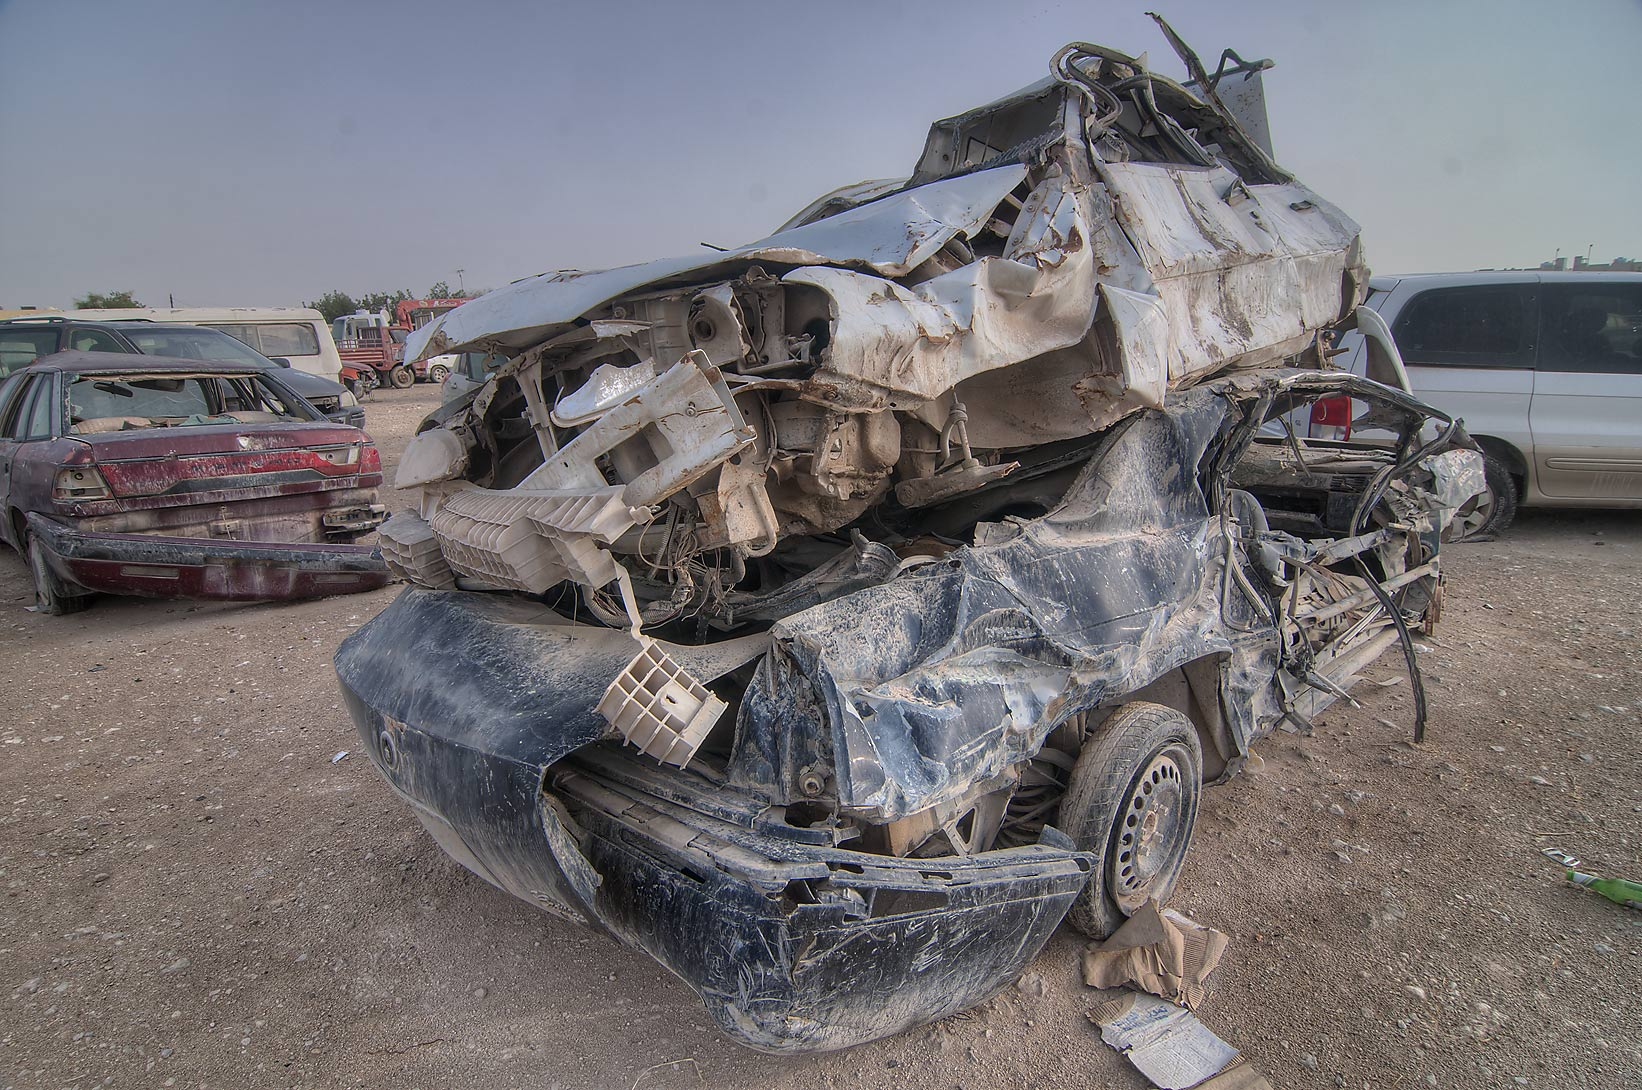 Stacked damaged cars near Al Mamoura Traffic...Wholesale Markets area. Doha, Qatar